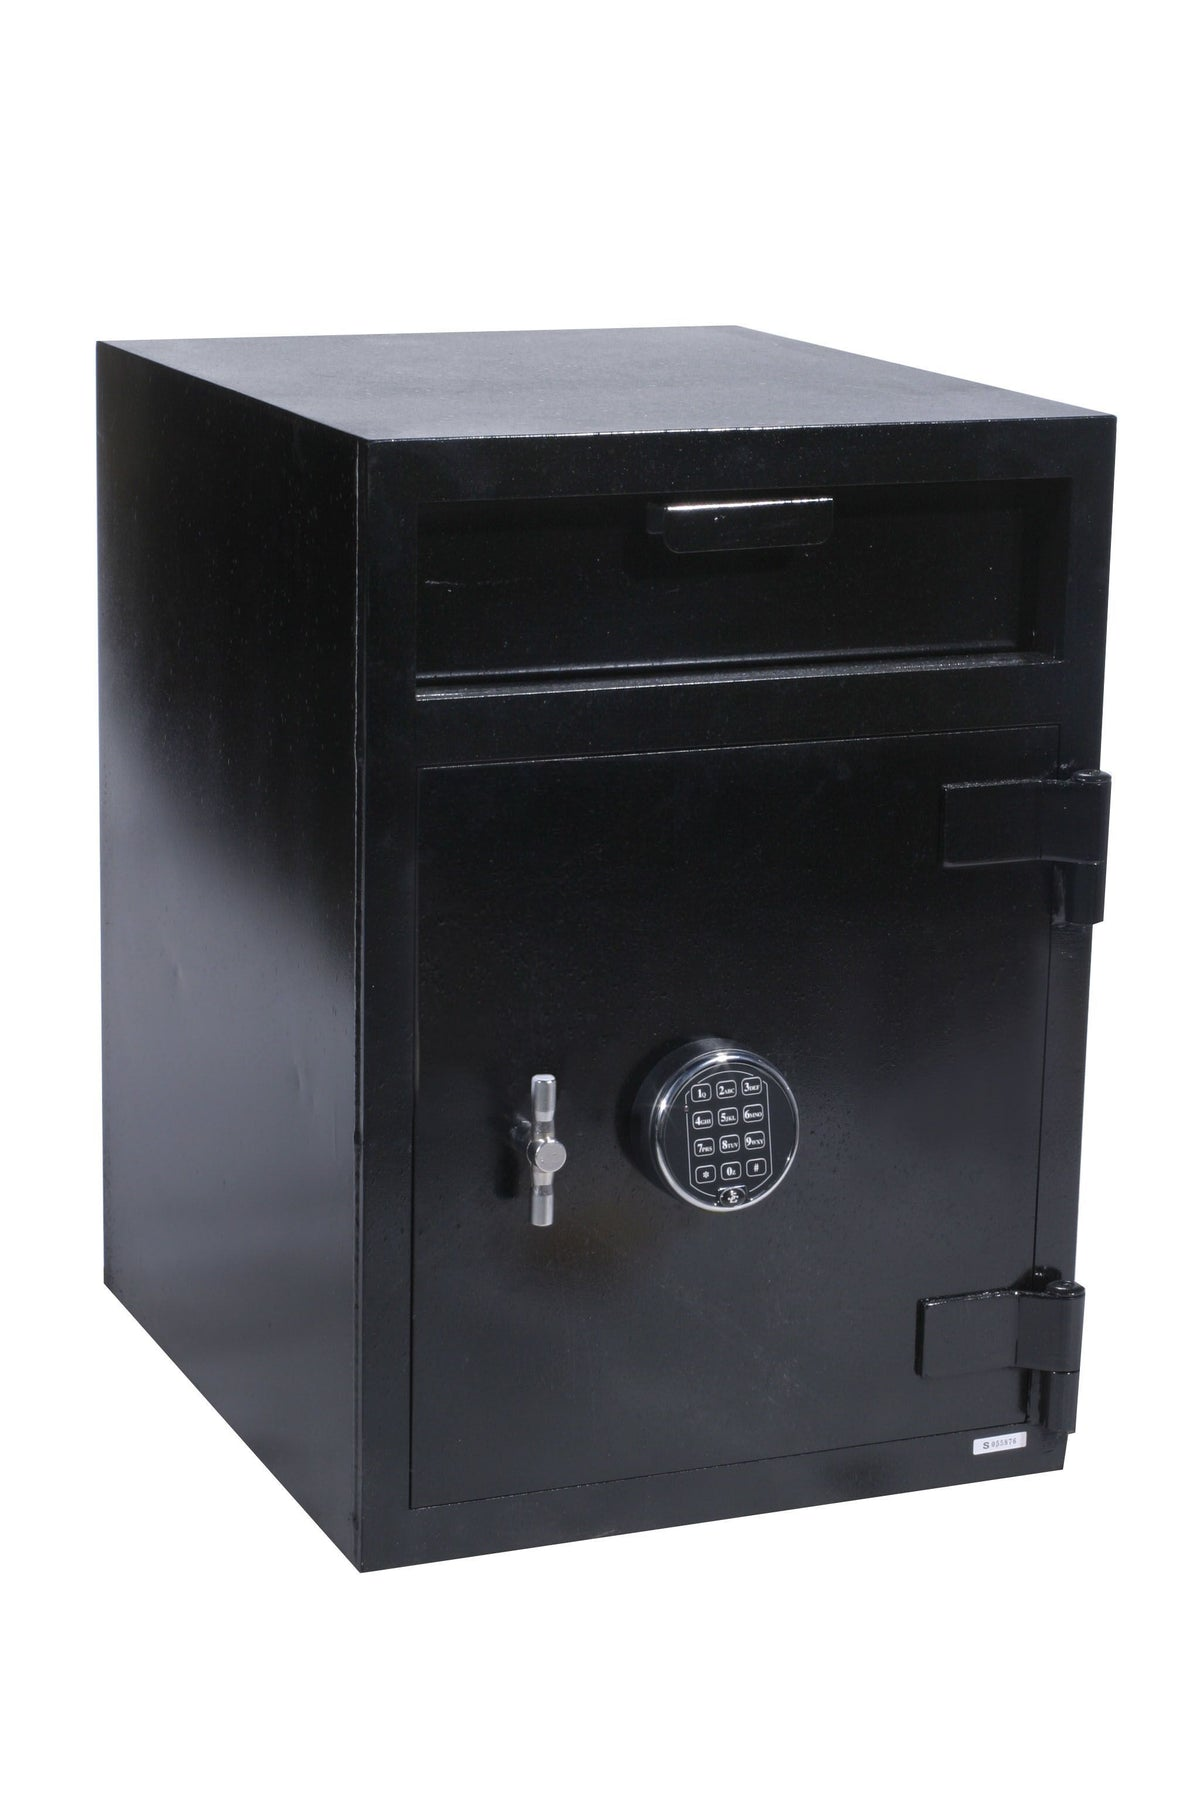 FireKing MB2720ICH-FK1 Depository Safe with Internal Locker